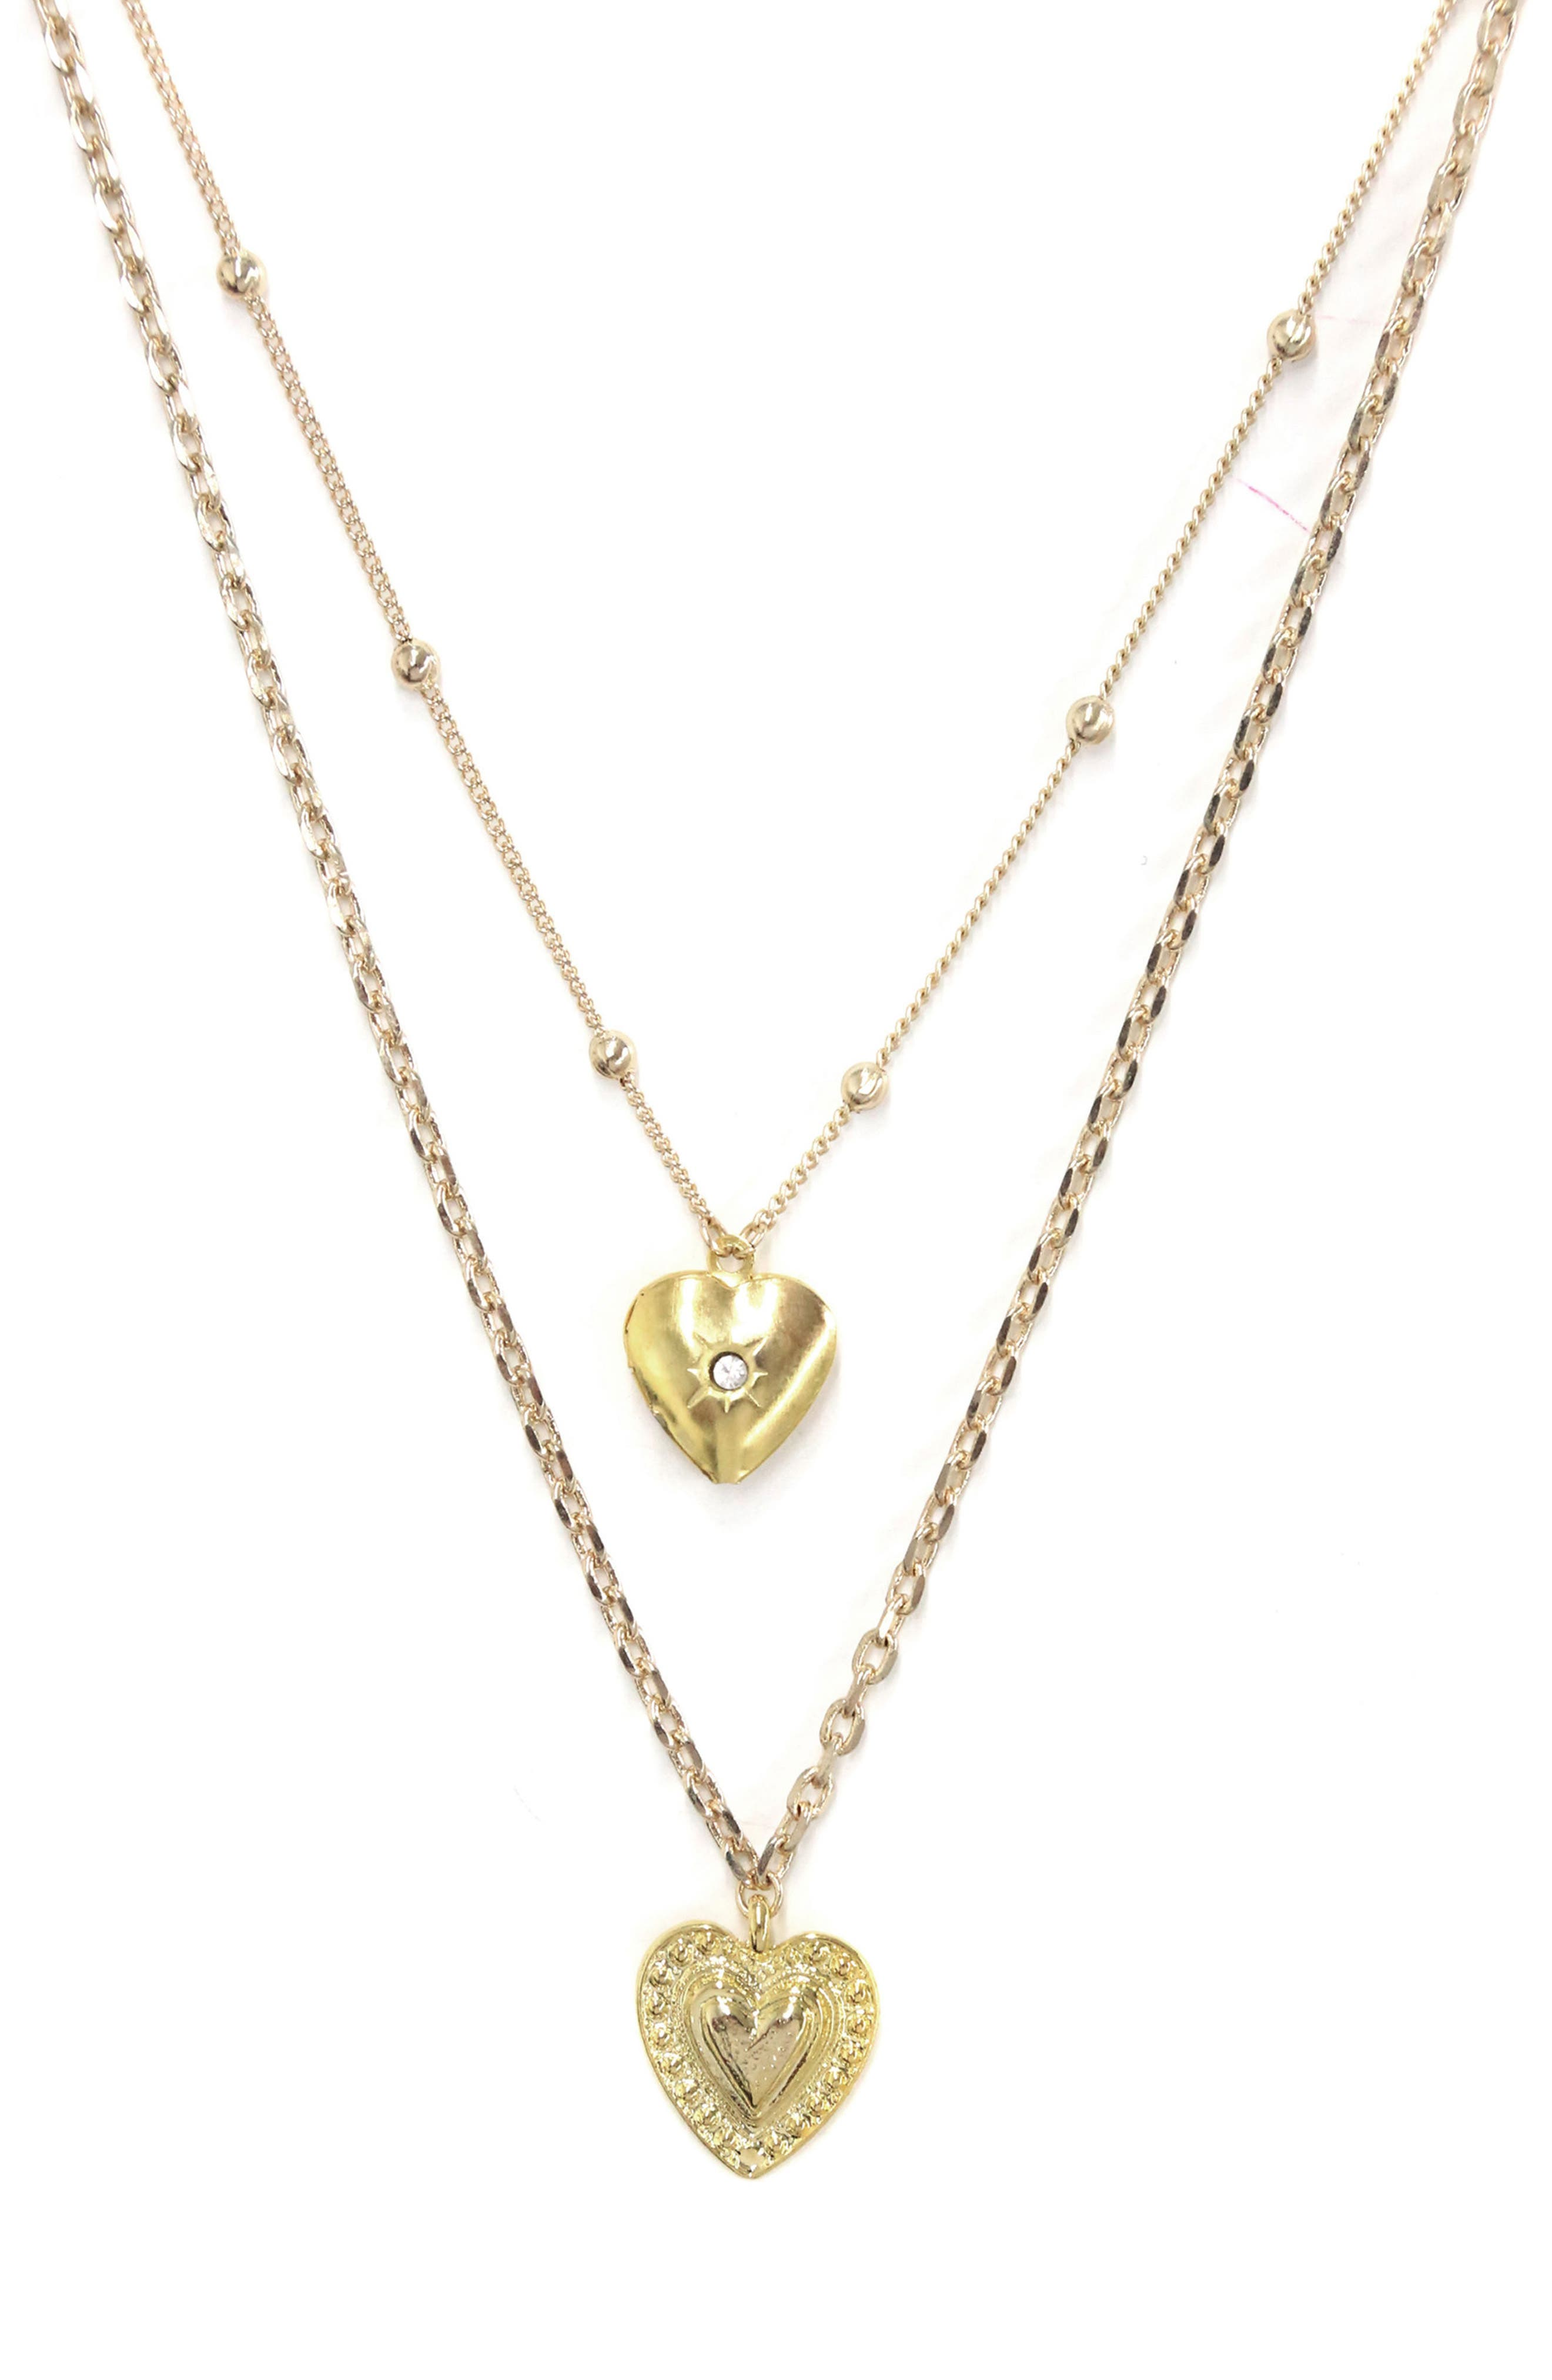 Set of 2 Heart Necklaces,                             Main thumbnail 1, color,                             Gold